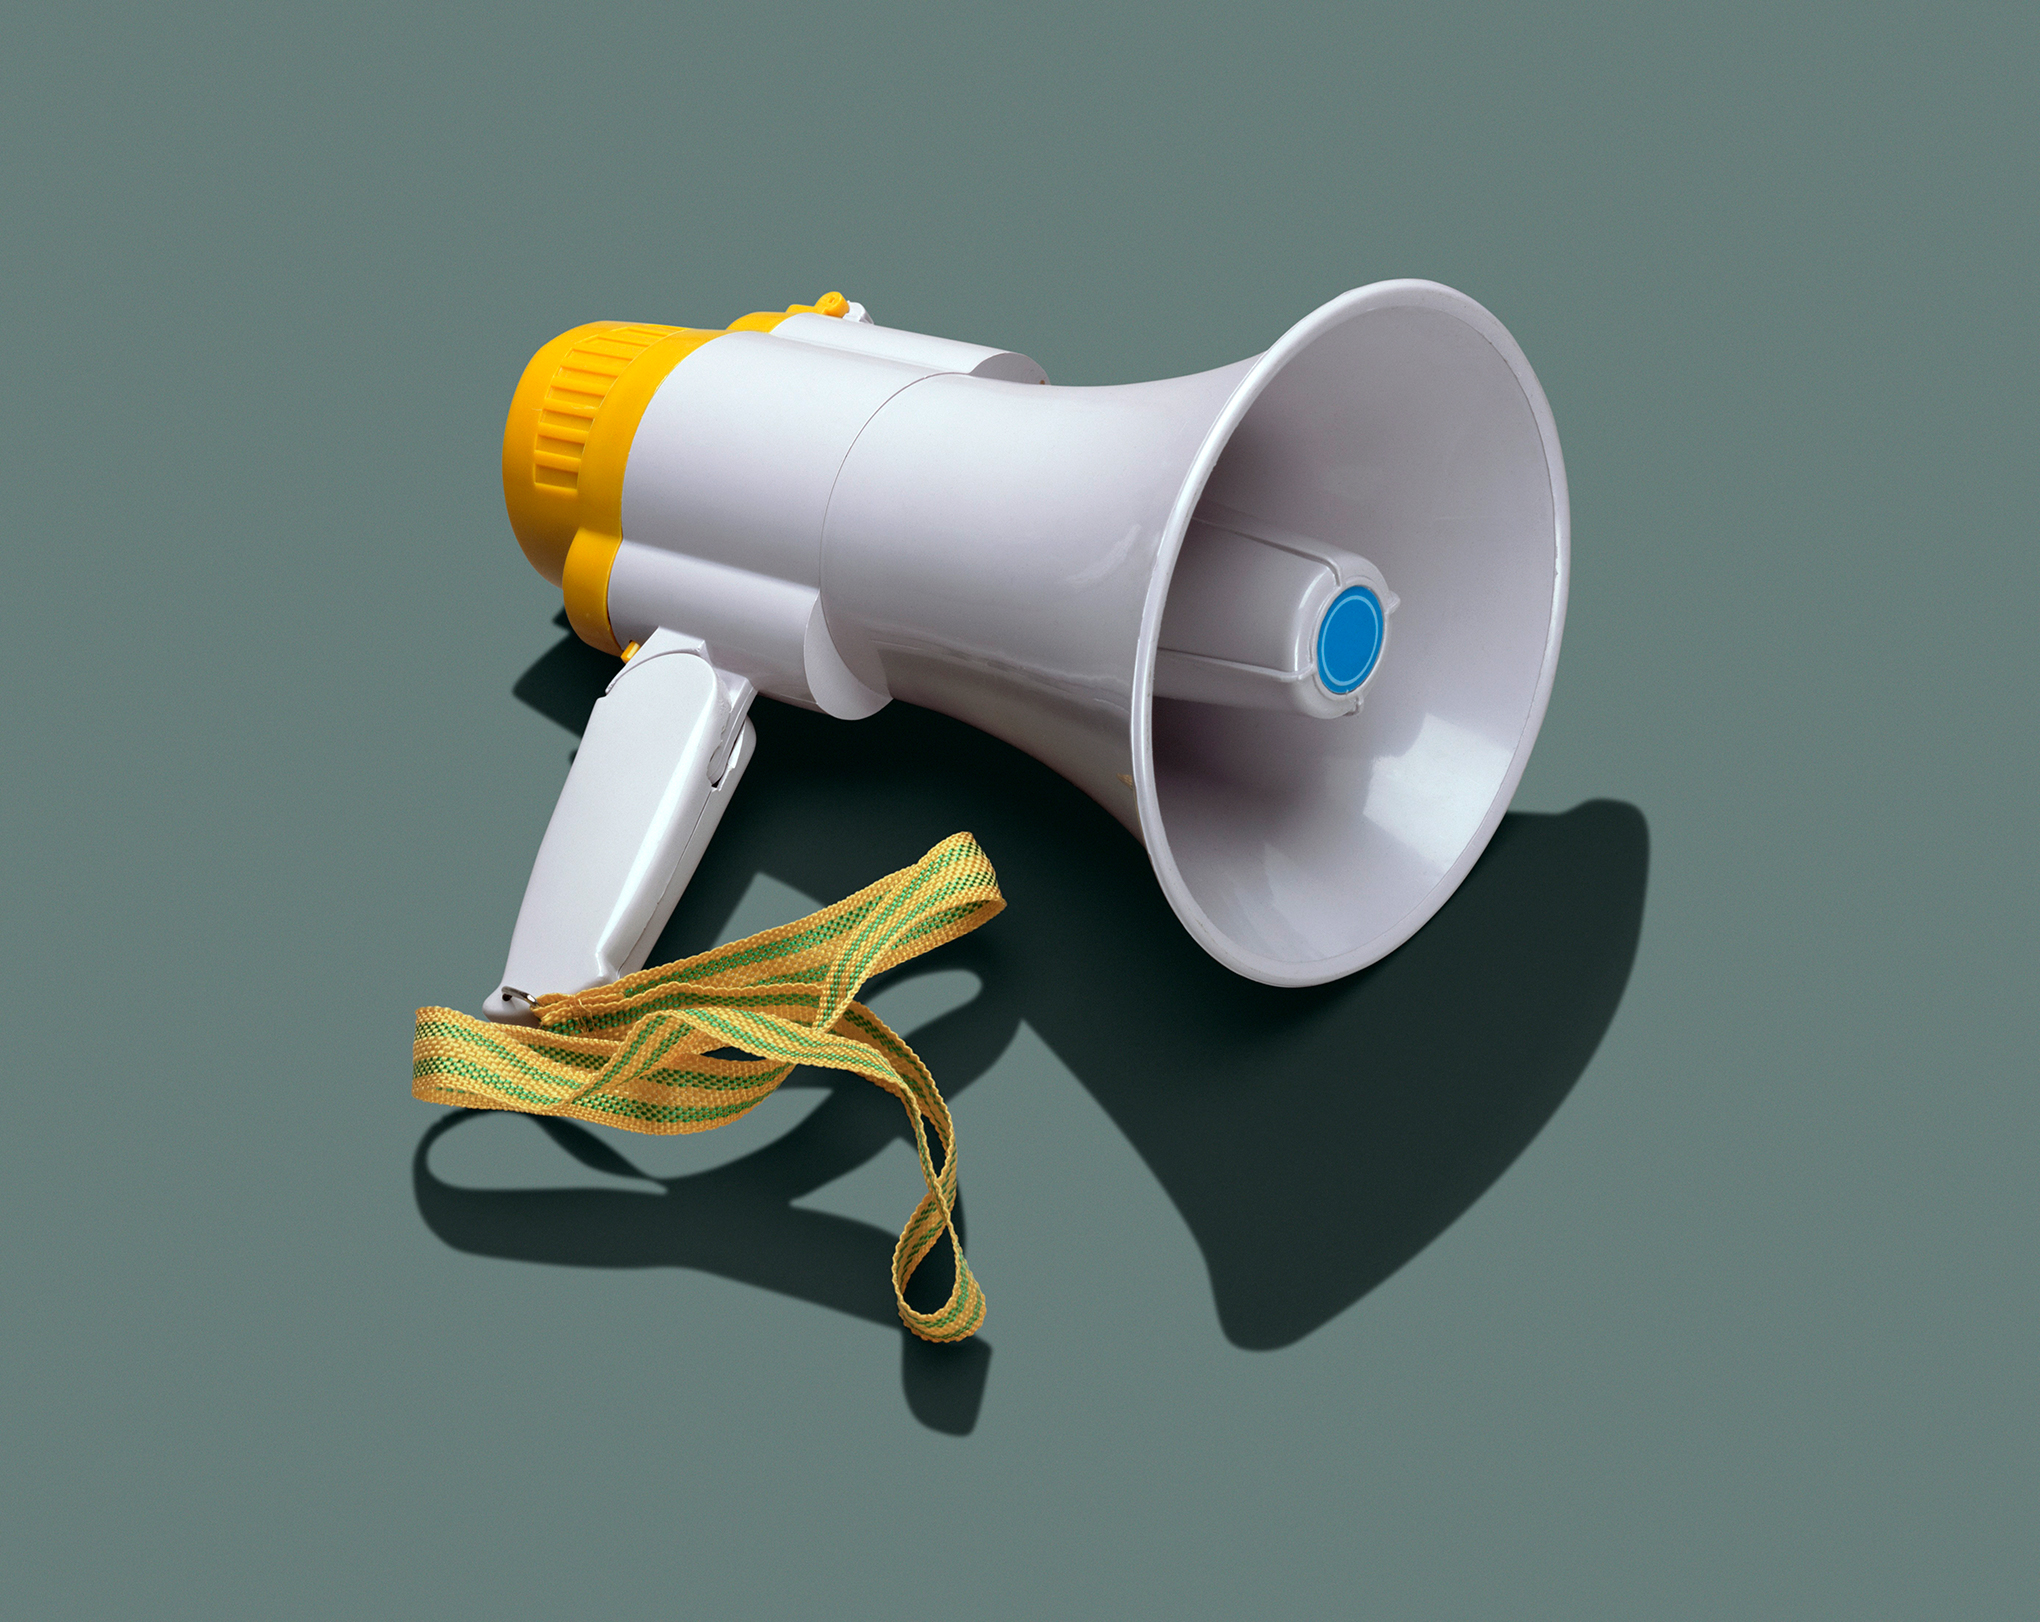 white megaphone with a yellow and green wristlet against a great-green background and shadow underneath.